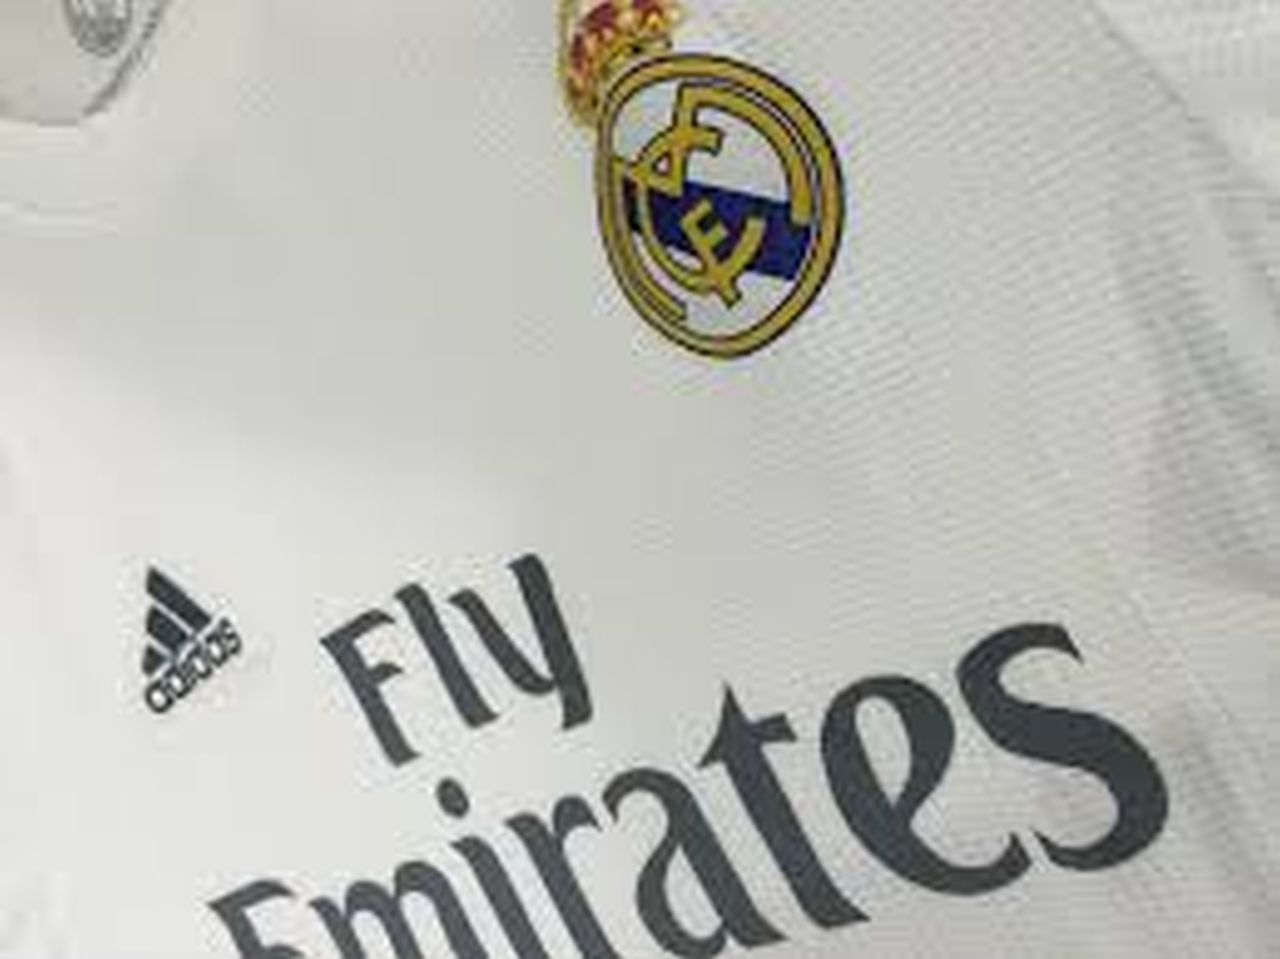 Real Madrid sponsor Adidas